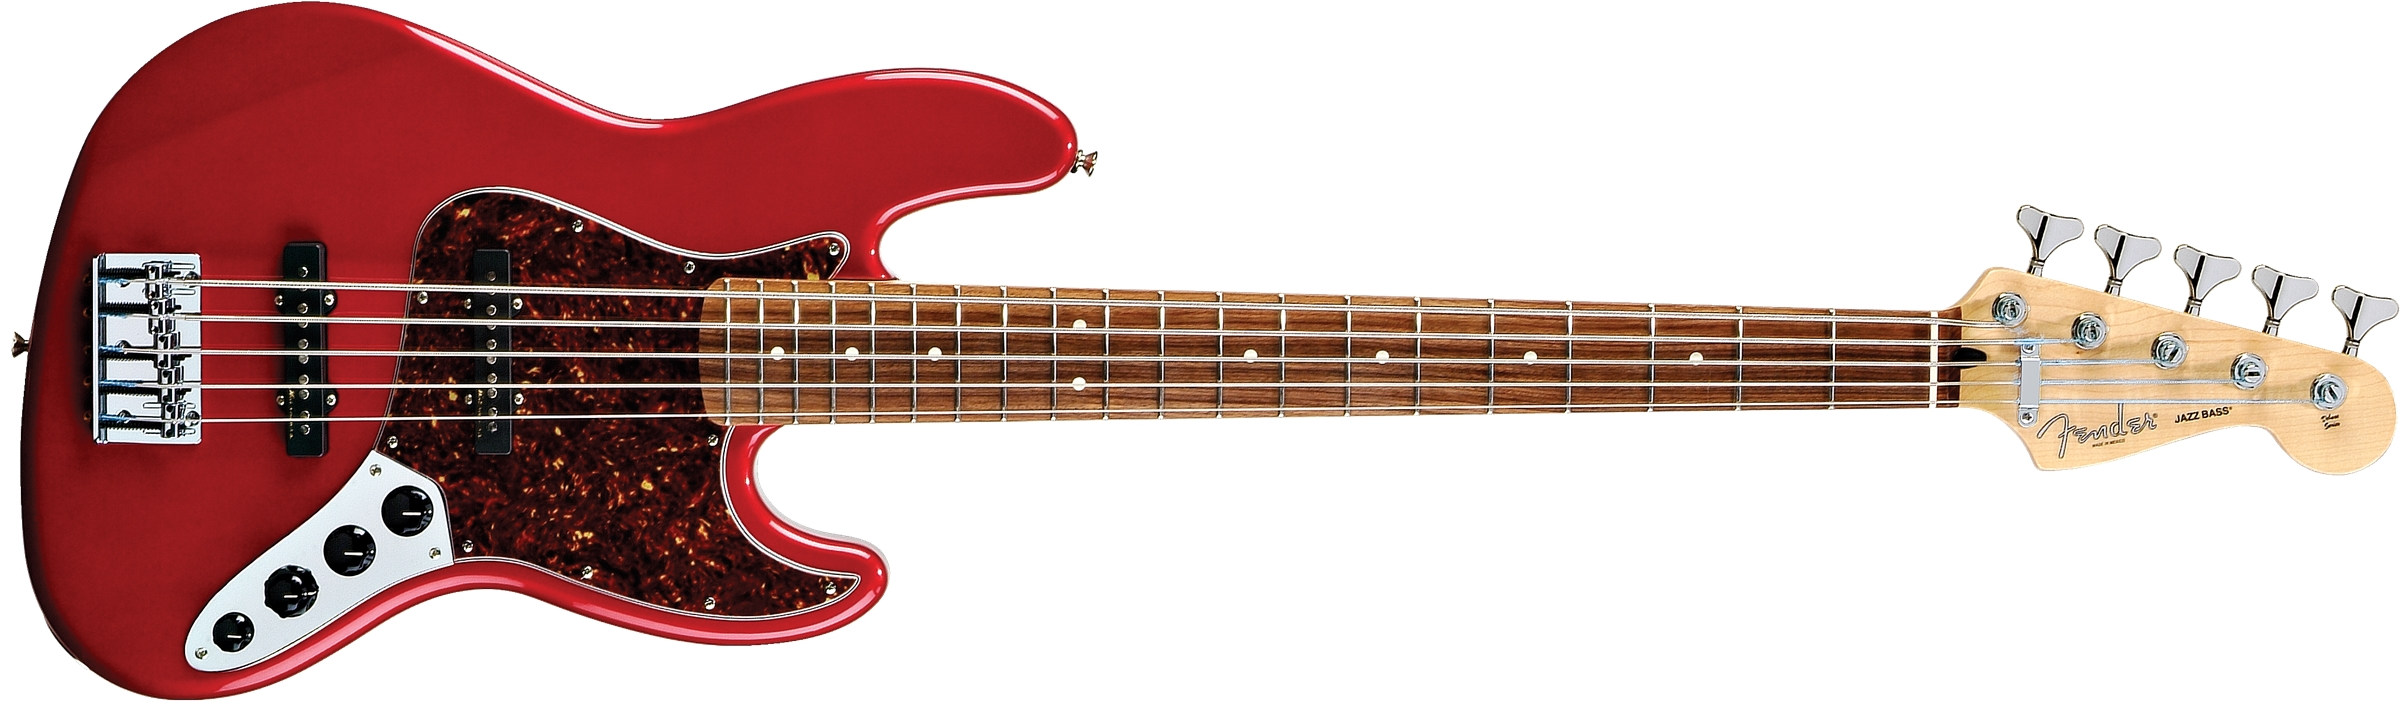 fender deluxe active jazz bass v 2004 current image. Black Bedroom Furniture Sets. Home Design Ideas